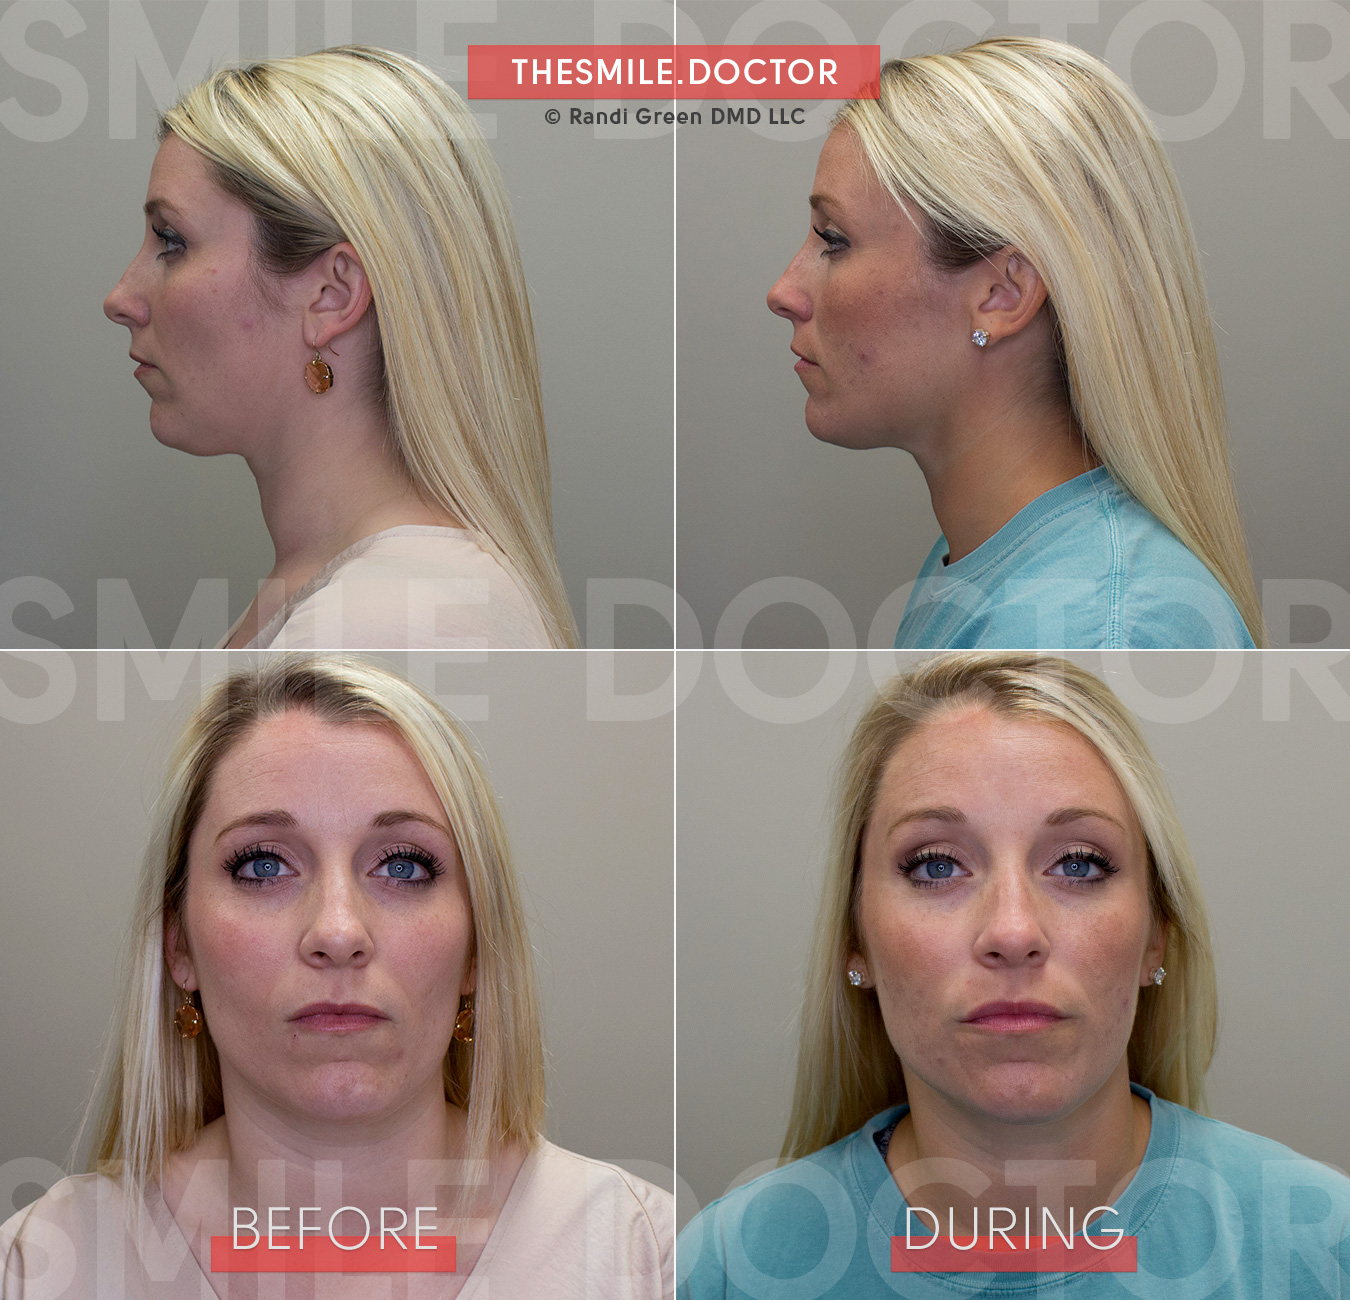 After relieving Arwen's TMJ pain with a reversible TMD therapy, Dr. Green finished the case with Facial Growth Orthodontics to gain additional benefits for her physiologic biting position along with a cosmetic facelift at the dentist!